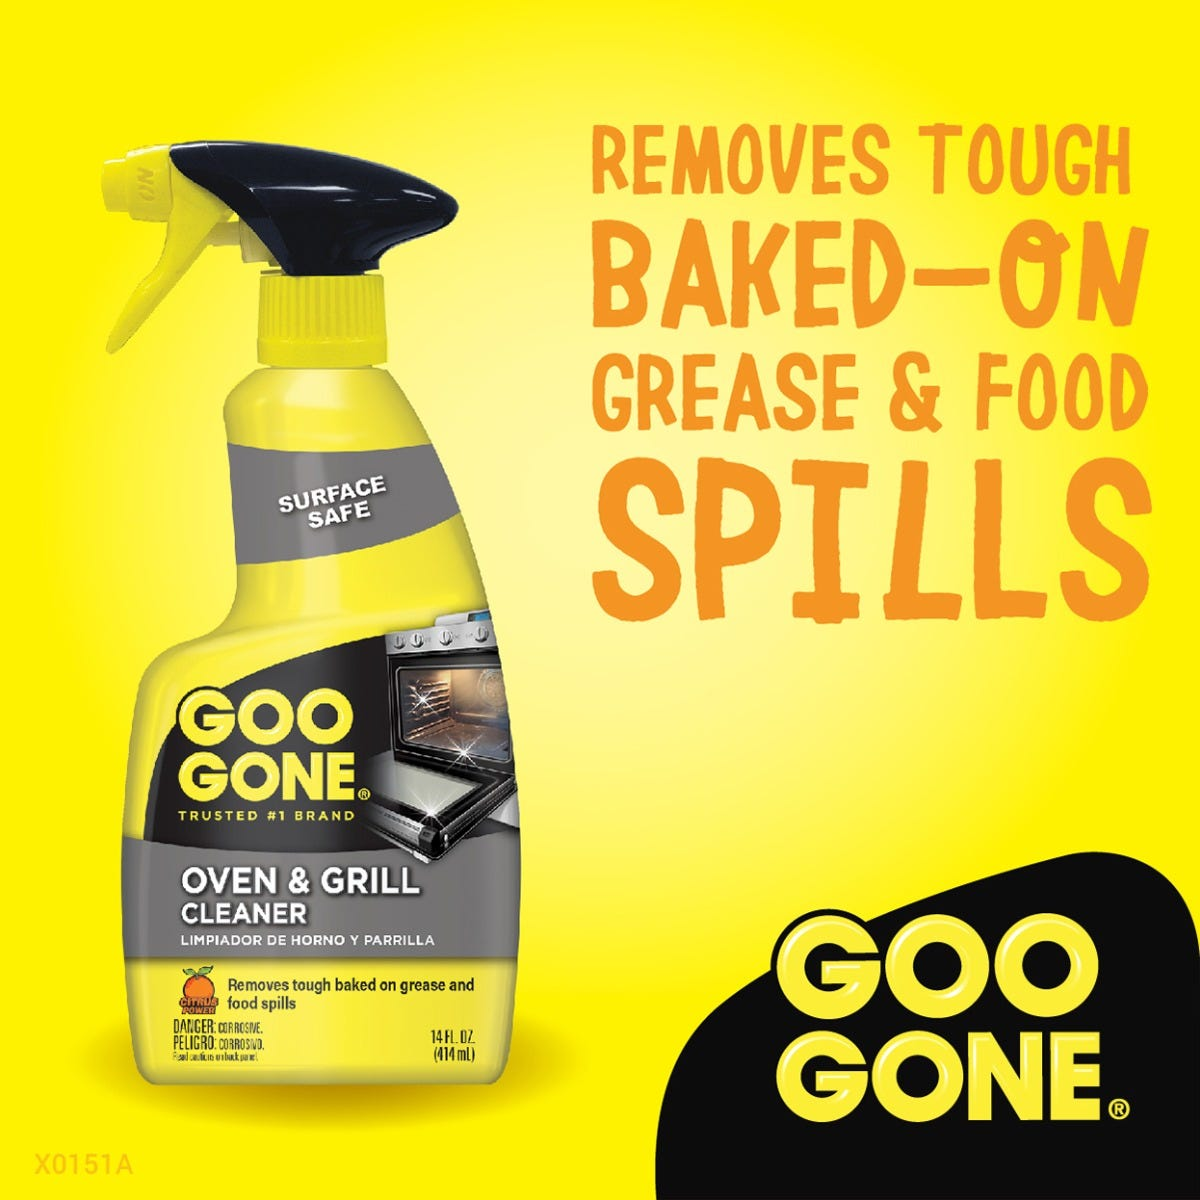 Remove tough grease & food spills